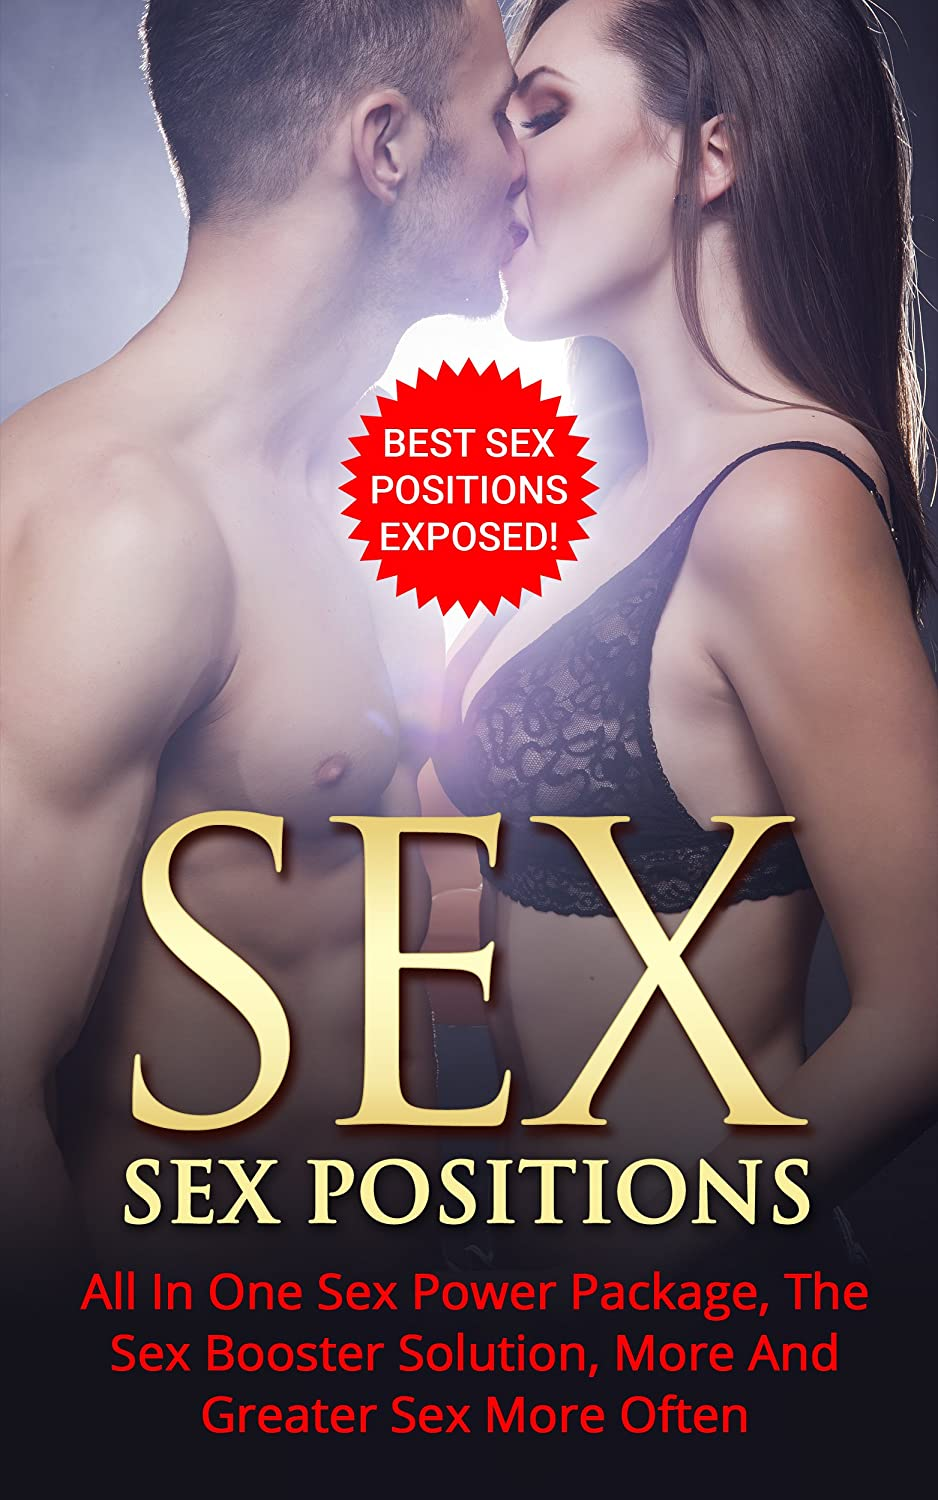 Right position to improve sex power